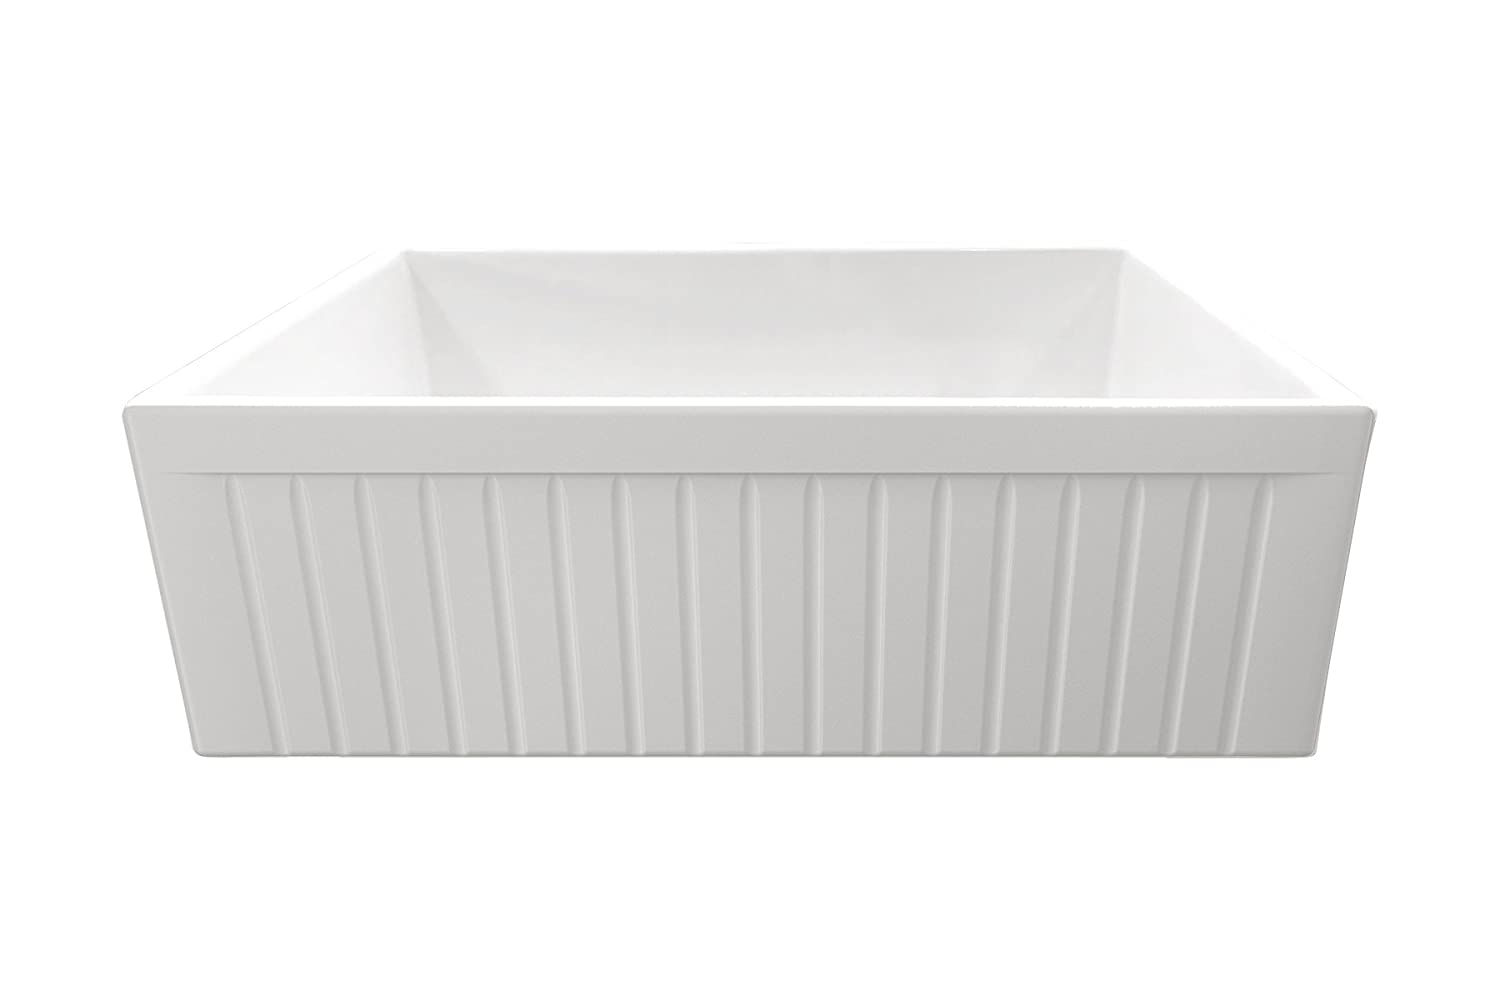 MSFC30FLT 30 Fluted Plain Reversible Fireclay Kitchen Sink